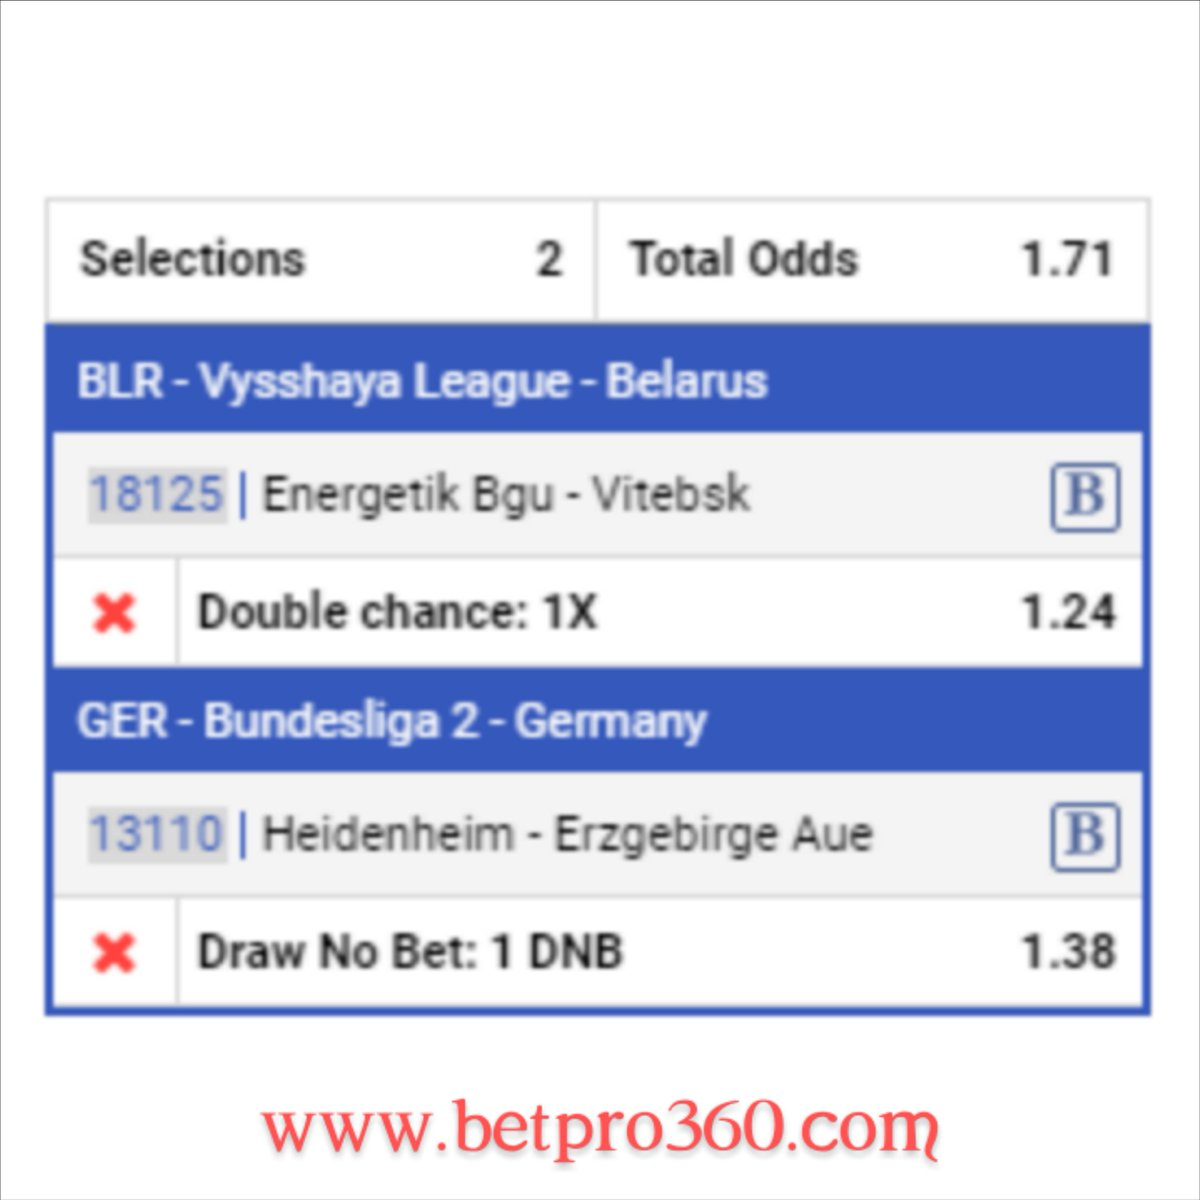 Today's FREE Tips. . . 4 sets to be played separately Football. DON'T MISS OUT!!! . Send us a DM using this link http://t.me/Betpro_360 for more FREE PREDICTION. . #betpro_360 #freetips #bettingtips #betting #bet #tipster #sportsbetting #sportsbook #gambling #tips #football #betpic.twitter.com/RSSYUpGpq0